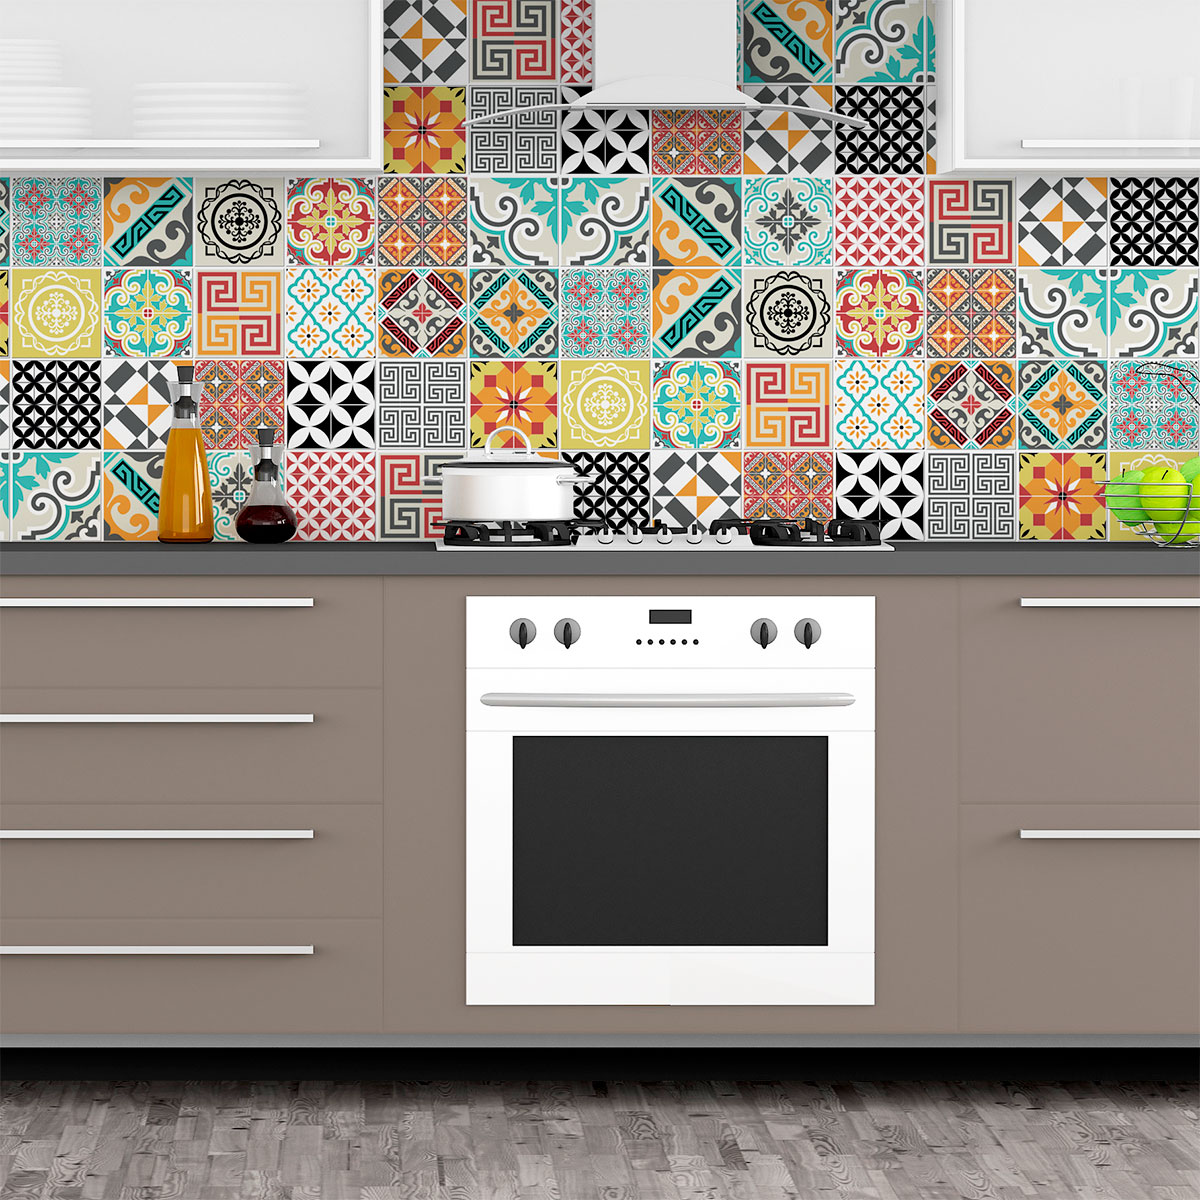 Stickers Carrelage Cuisine: 24 Stickers Carrelages Azulejos Tina